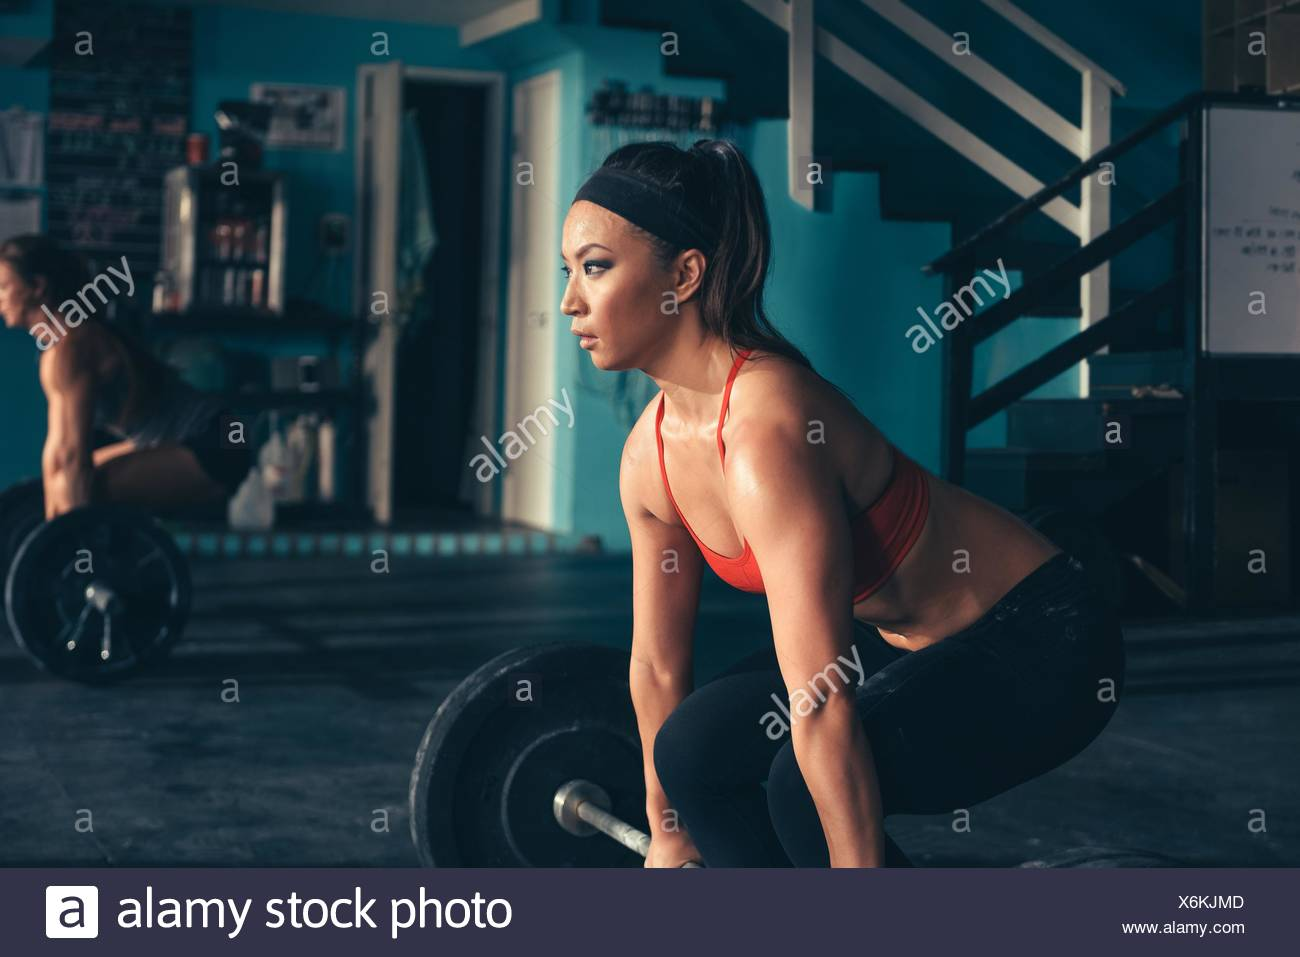 Woman crouching to lift barbell in gym - Stock Image